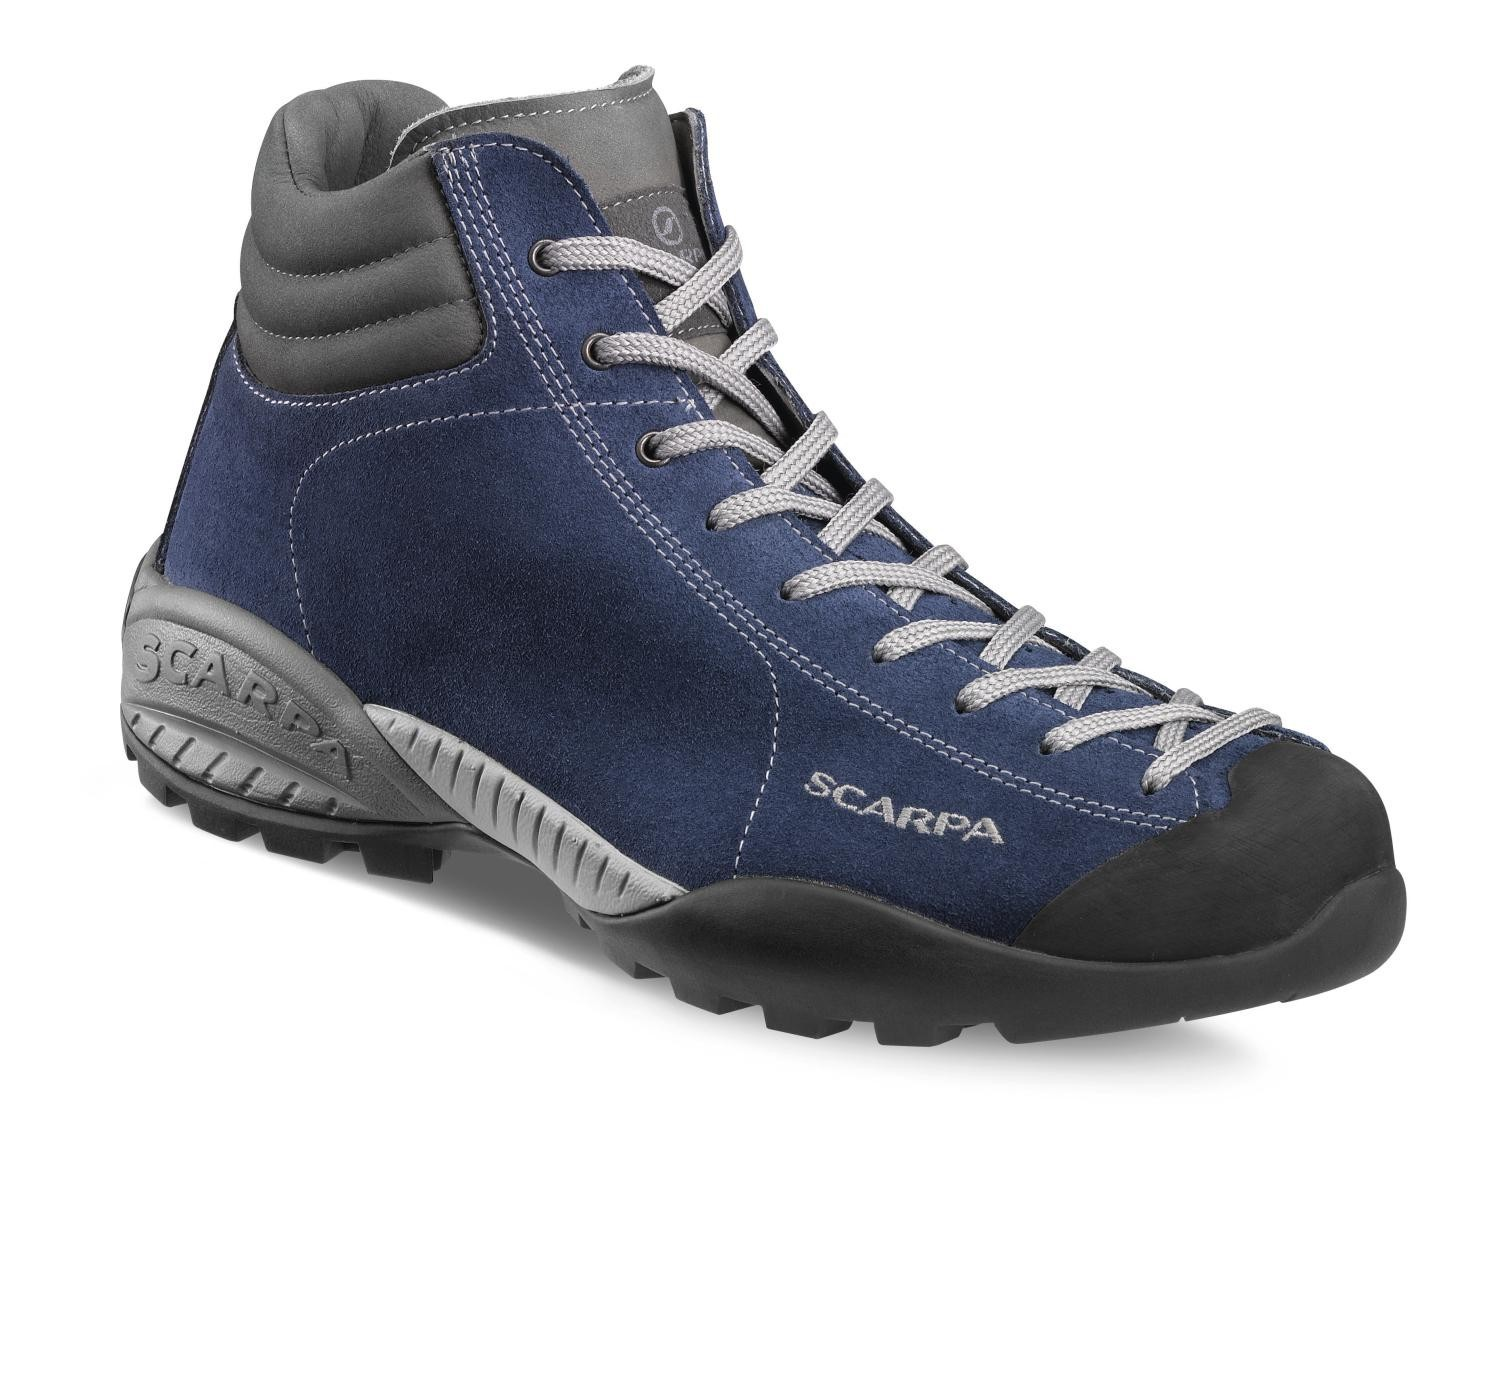 Scarpa - Mojito Plus GTX River - Approach Shoes - 40,5